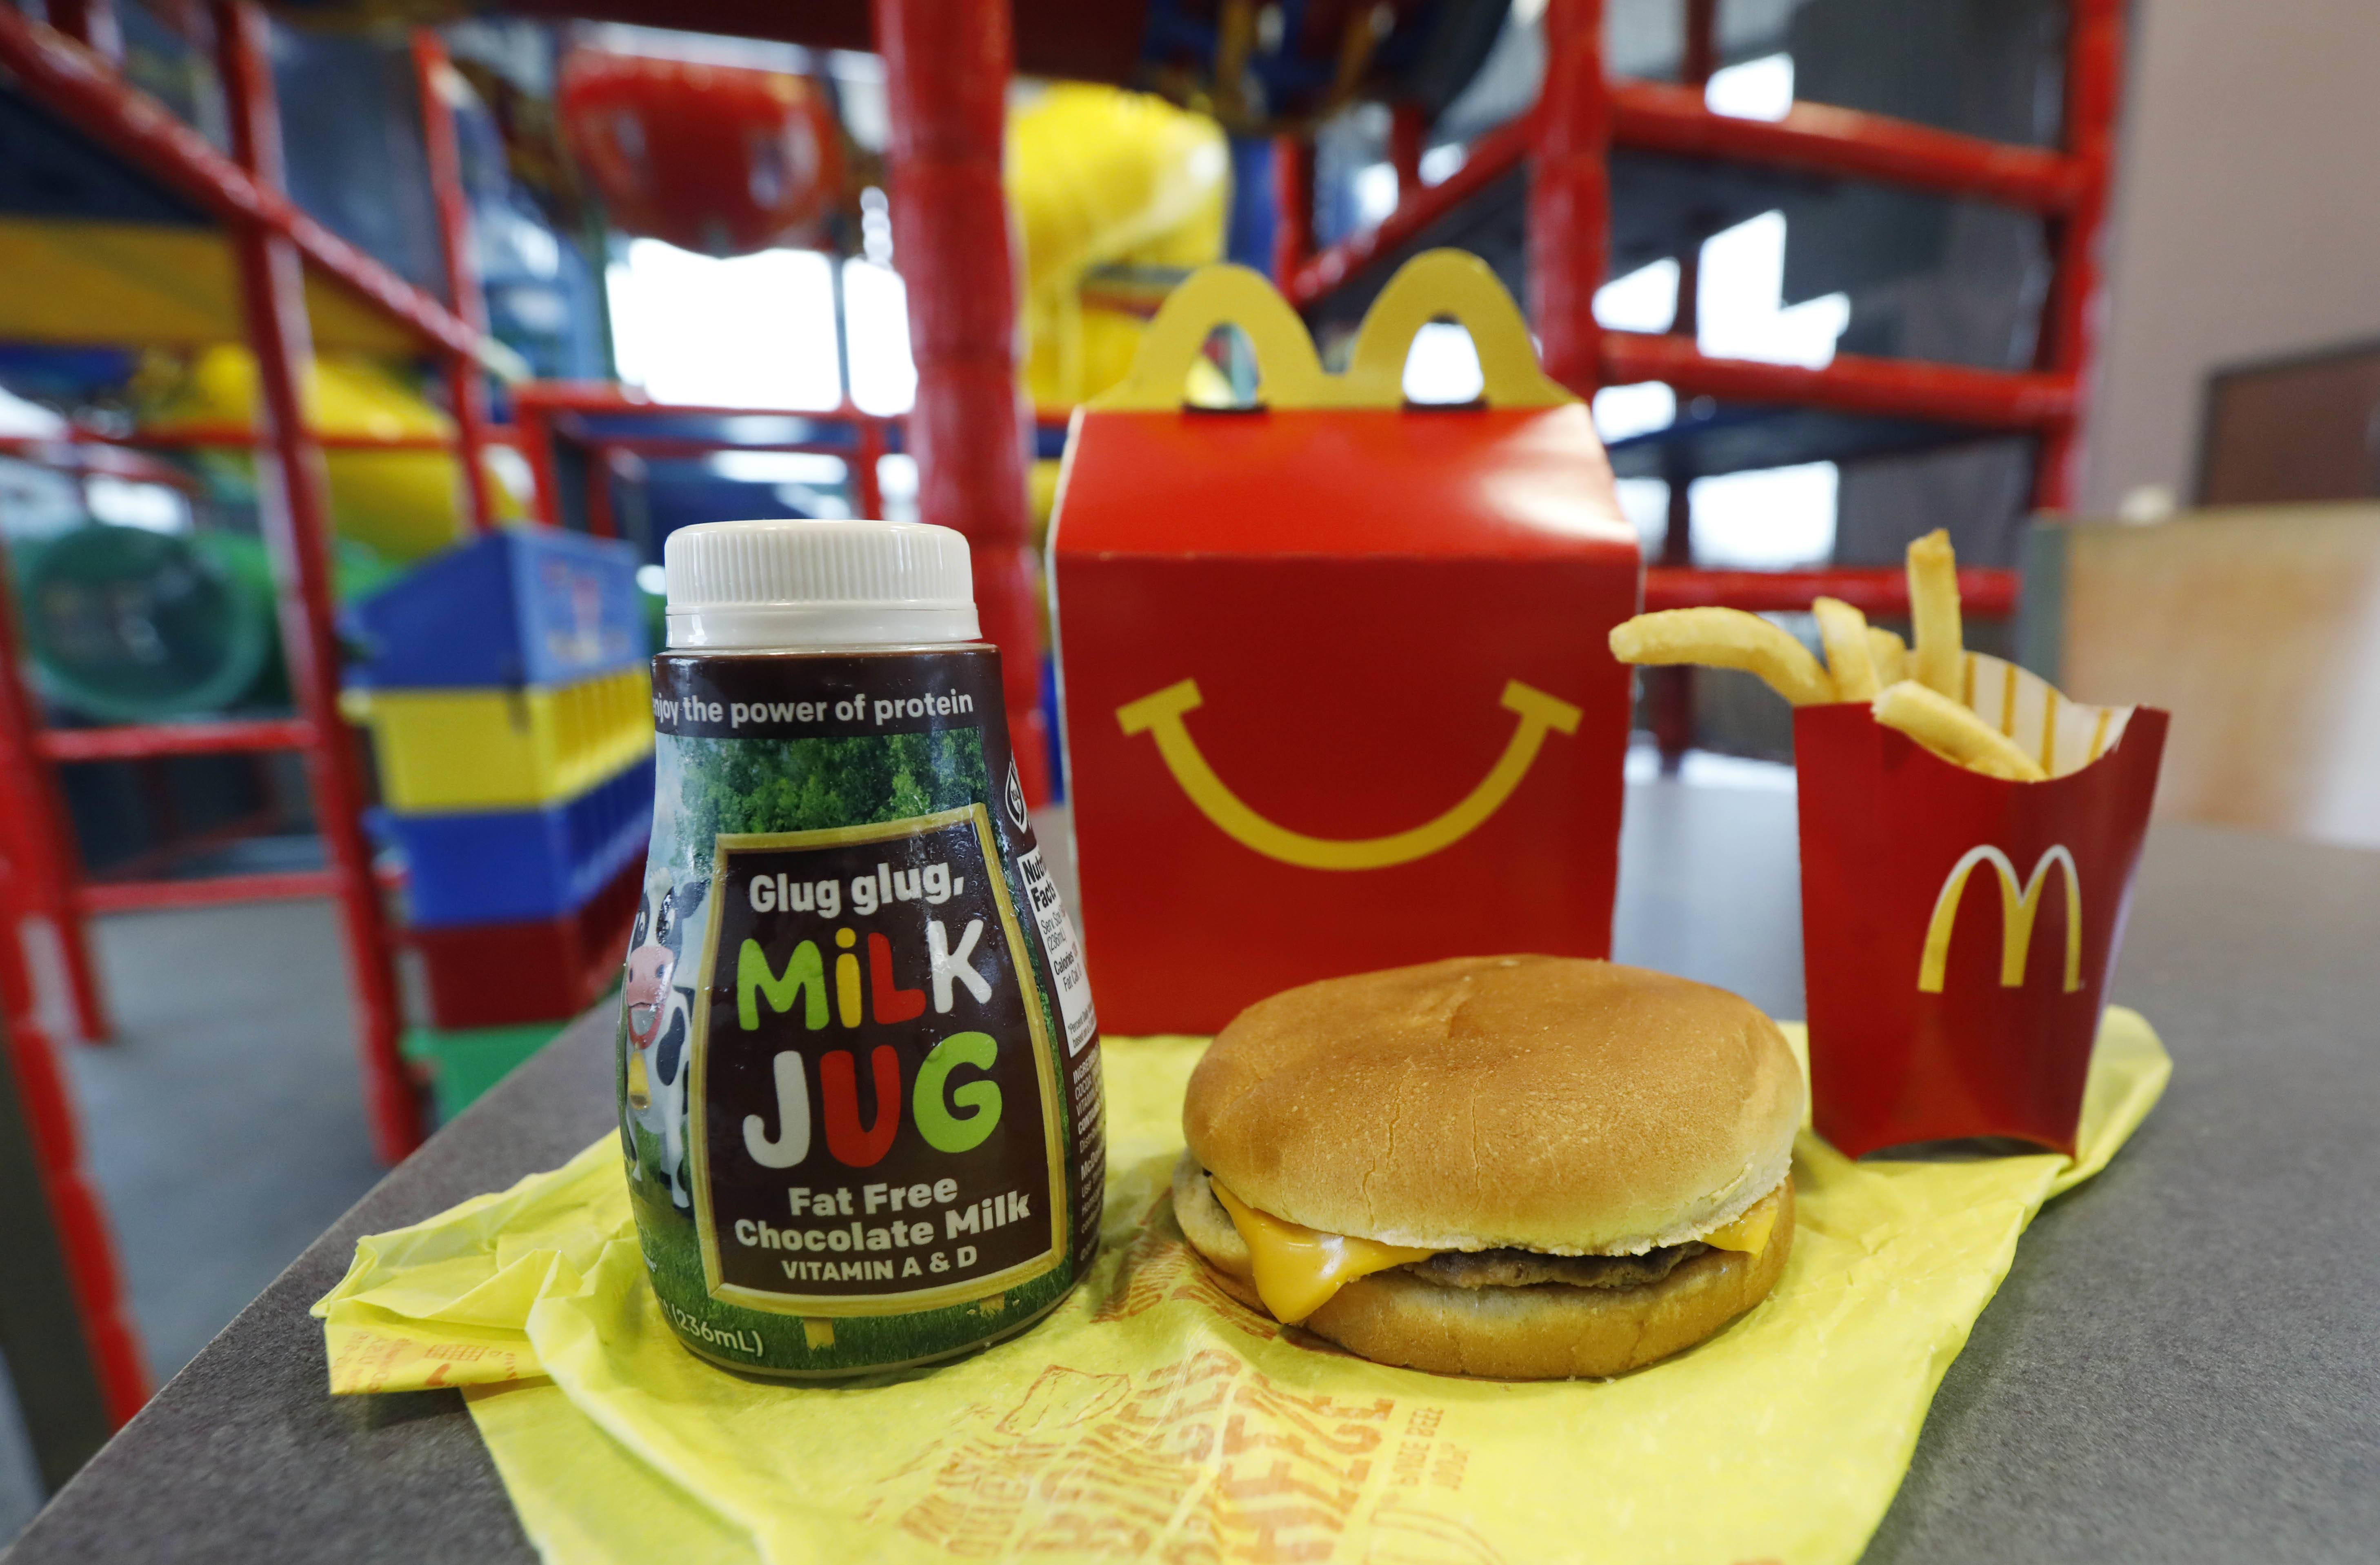 McDonald's will soon banish cheeseburgers and chocolate milk from its Happy Meal menu in an effort to cut down on the calories, sodium, saturated fat and sugar that kids consume at its restaurants. Diners can still ask specifically for cheeseburgers or chocolate milk with the kid's meal, but the fast-food company said that not listing them will reduce how often they're ordered.